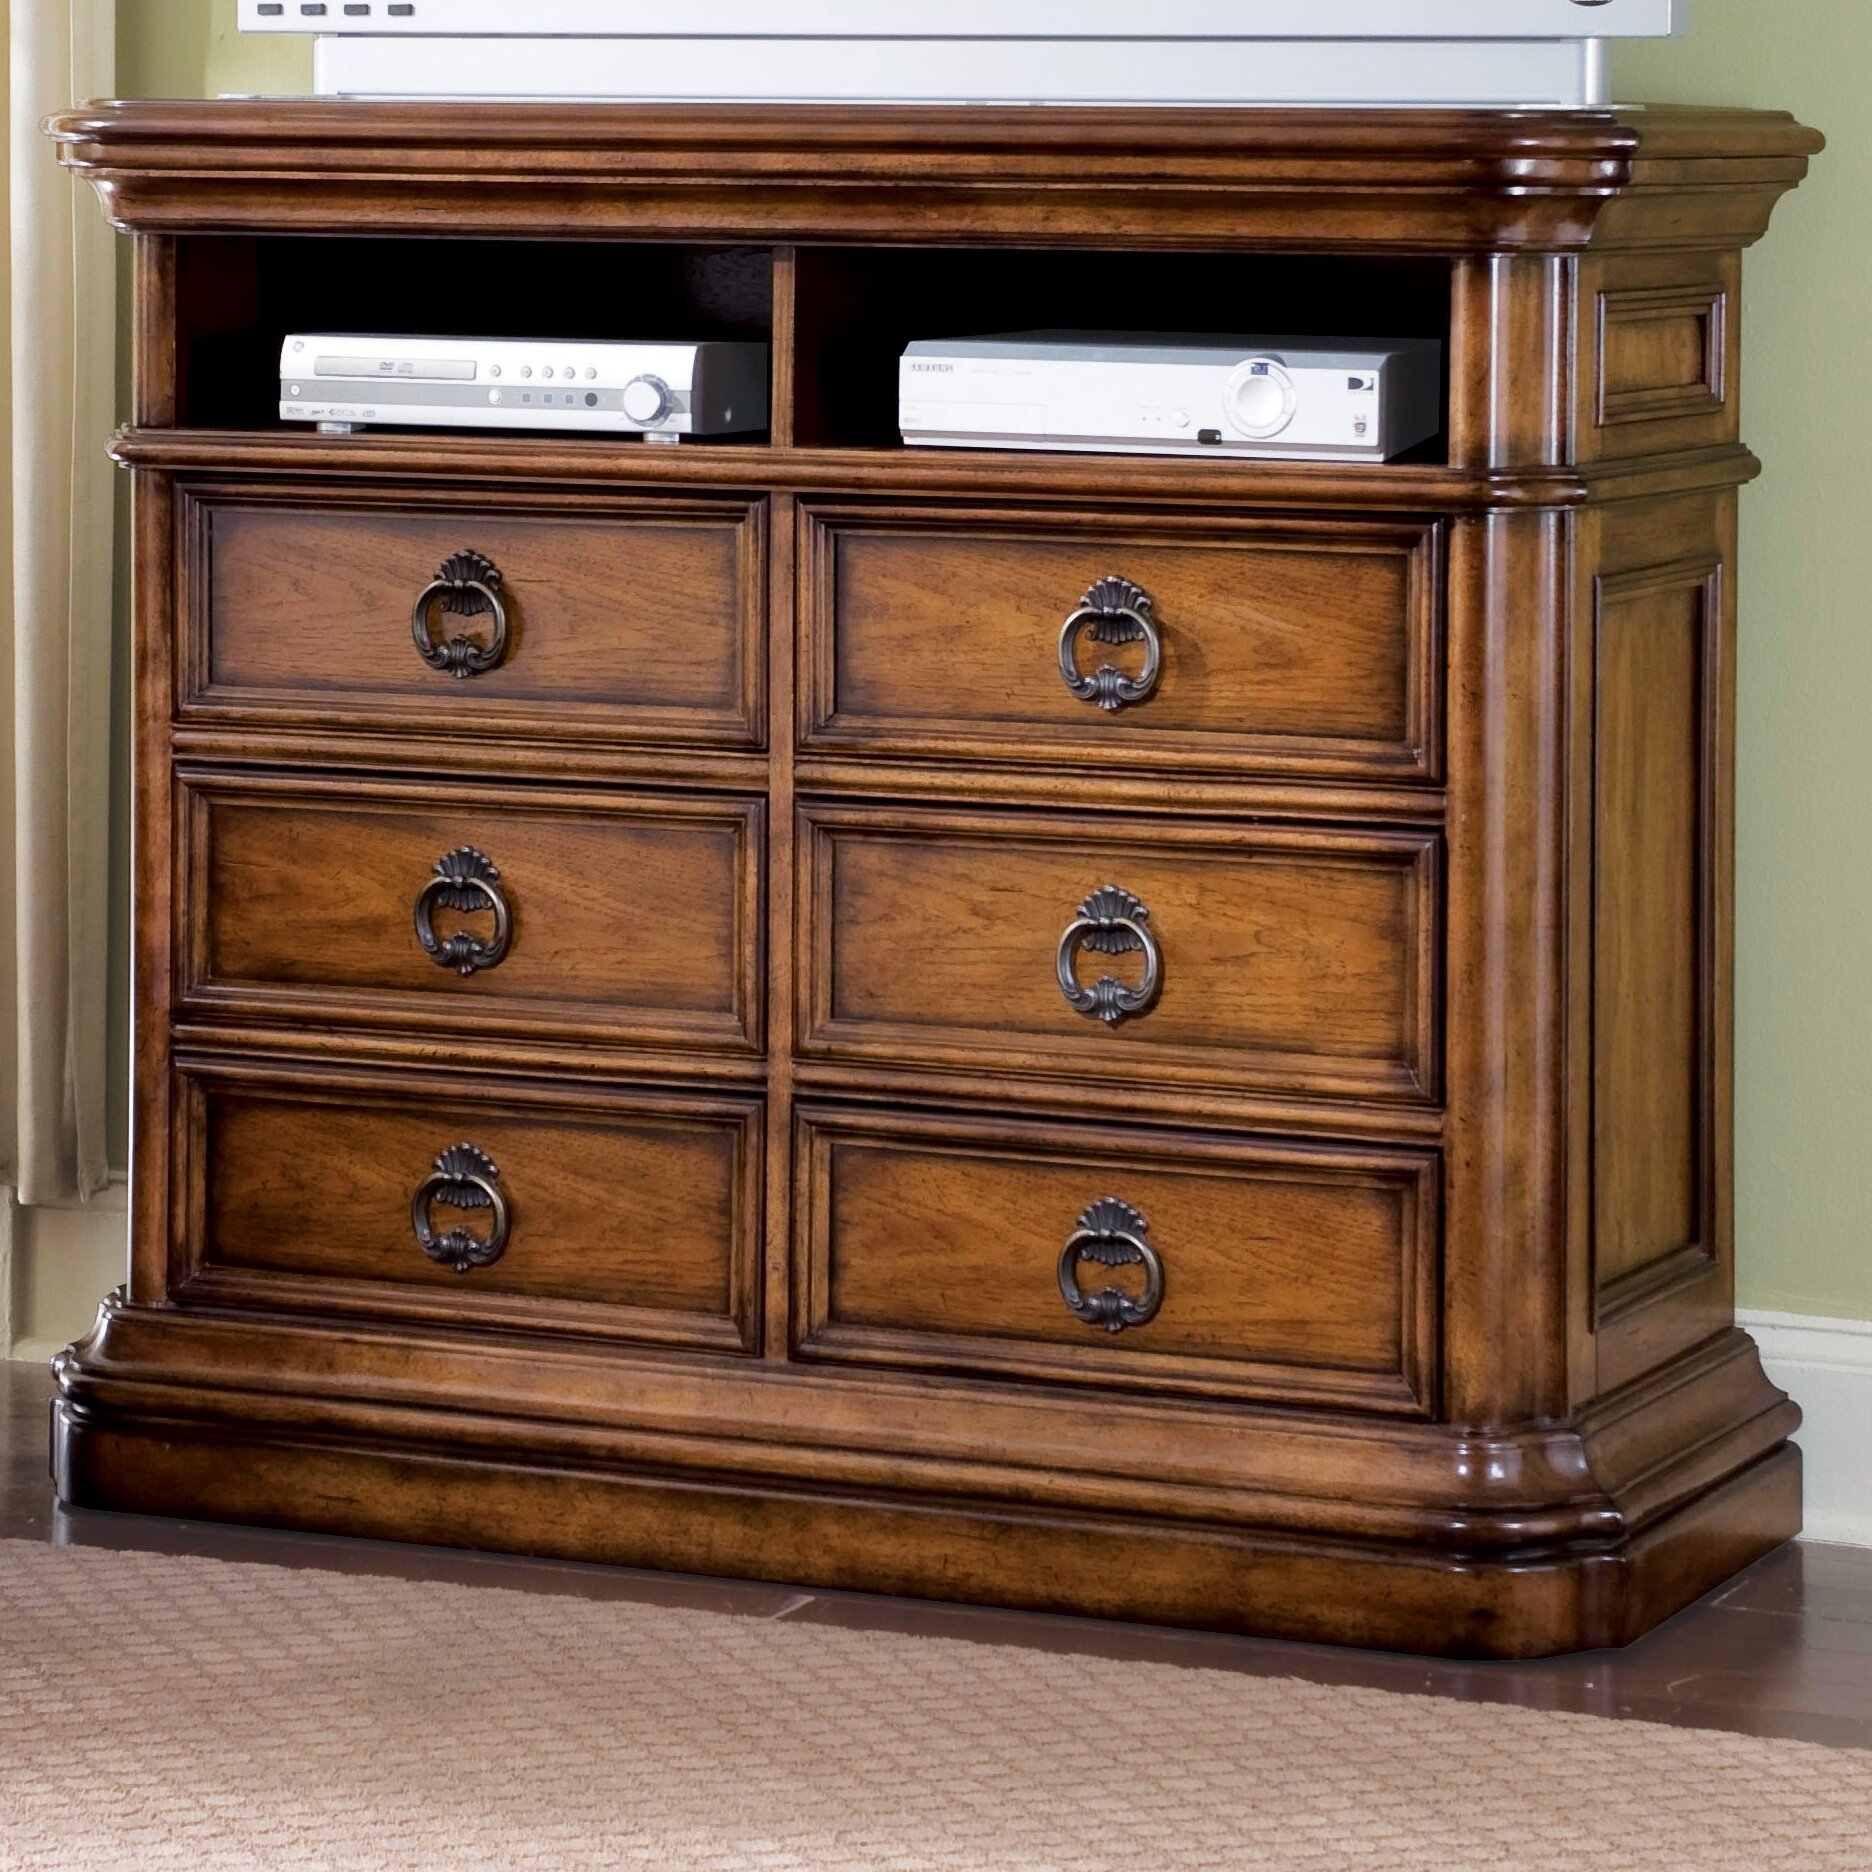 San Mateo Bedroom Furniture Pulaski Furniture San Mateo Wayfair